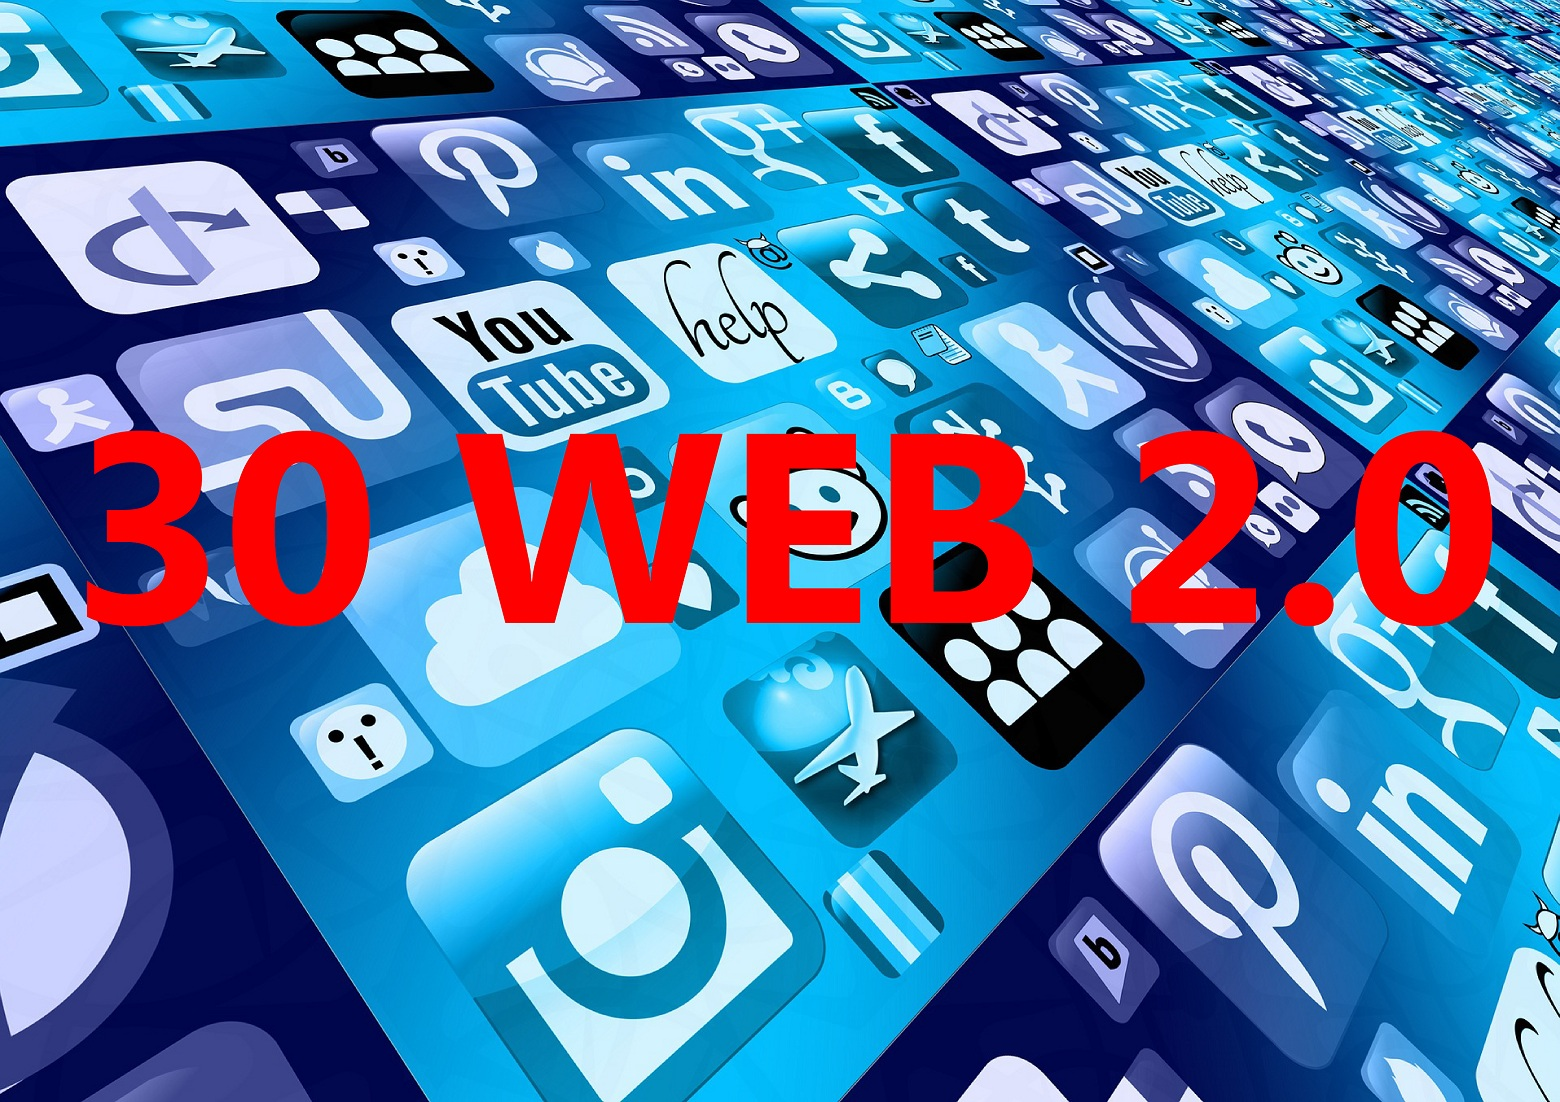 Create 30 web 2.0 to help your in ranking on google